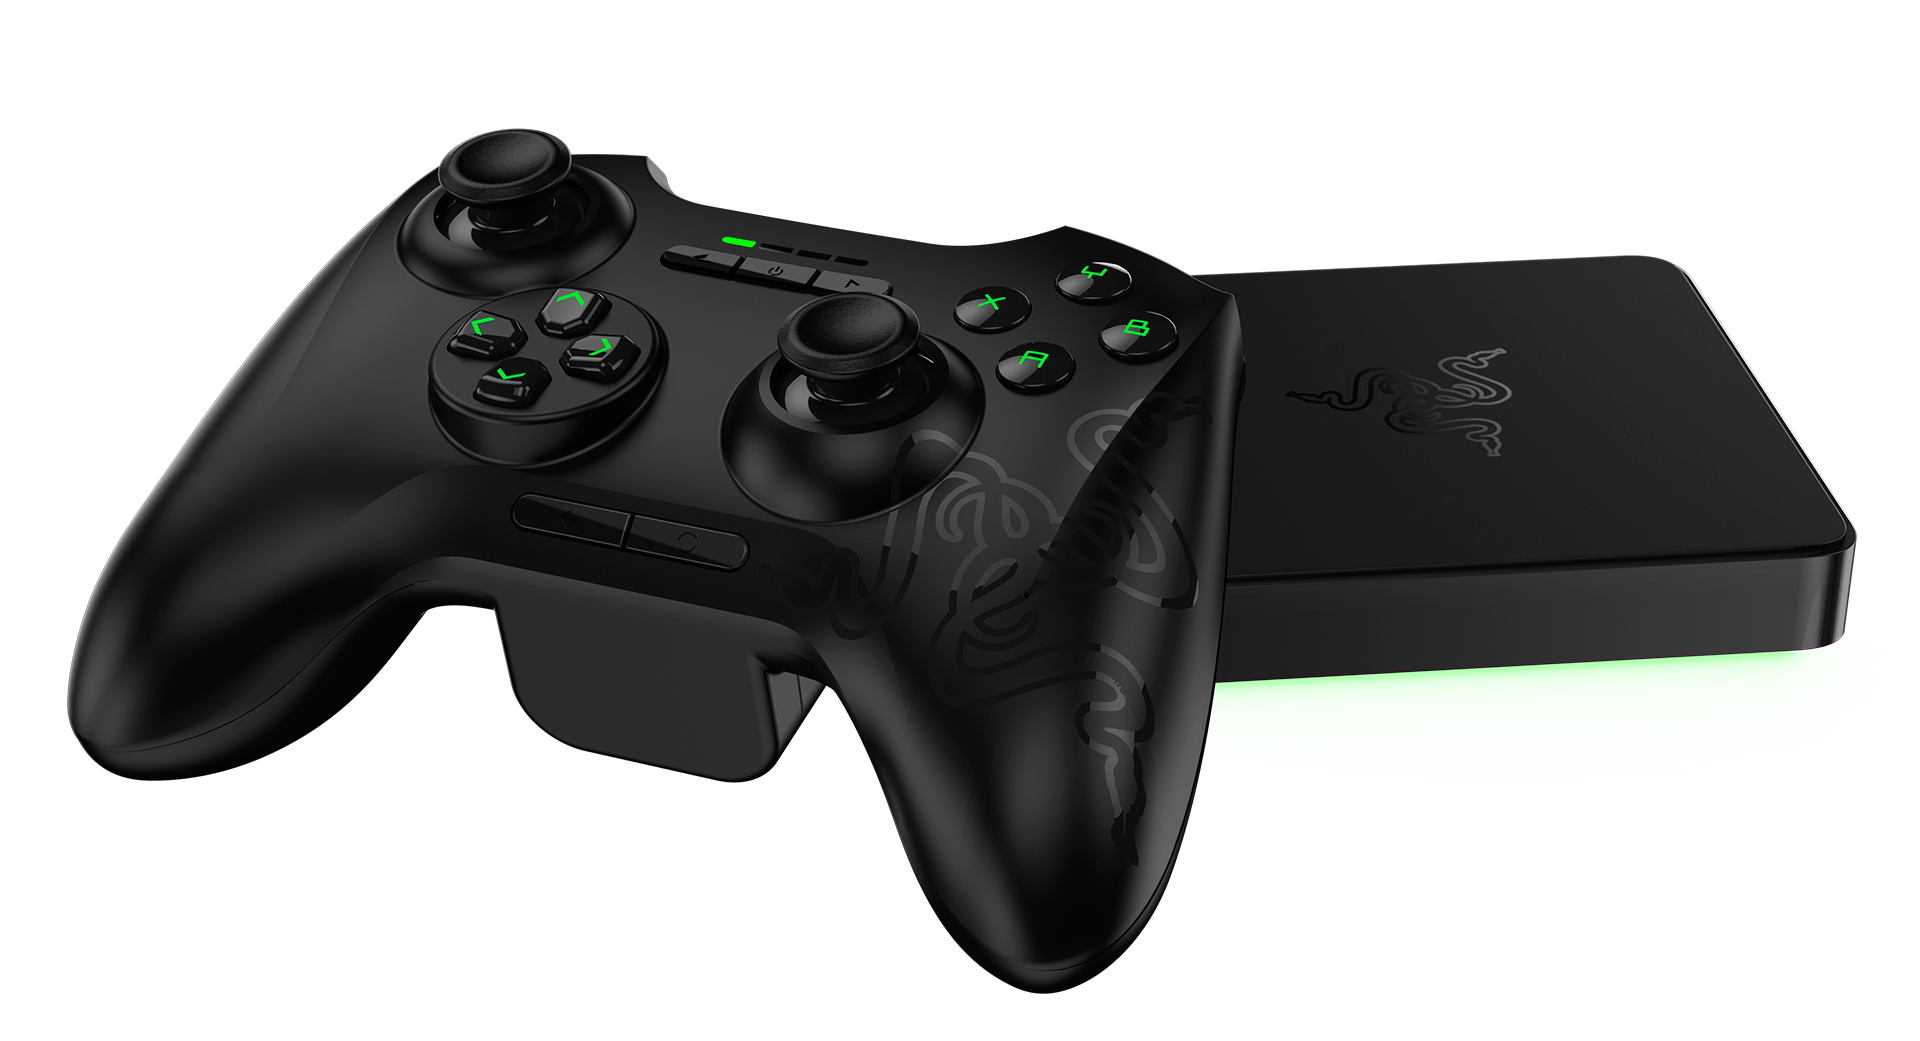 Razer's Forge TV Aims To Bring PC Gaming Into The Living Room